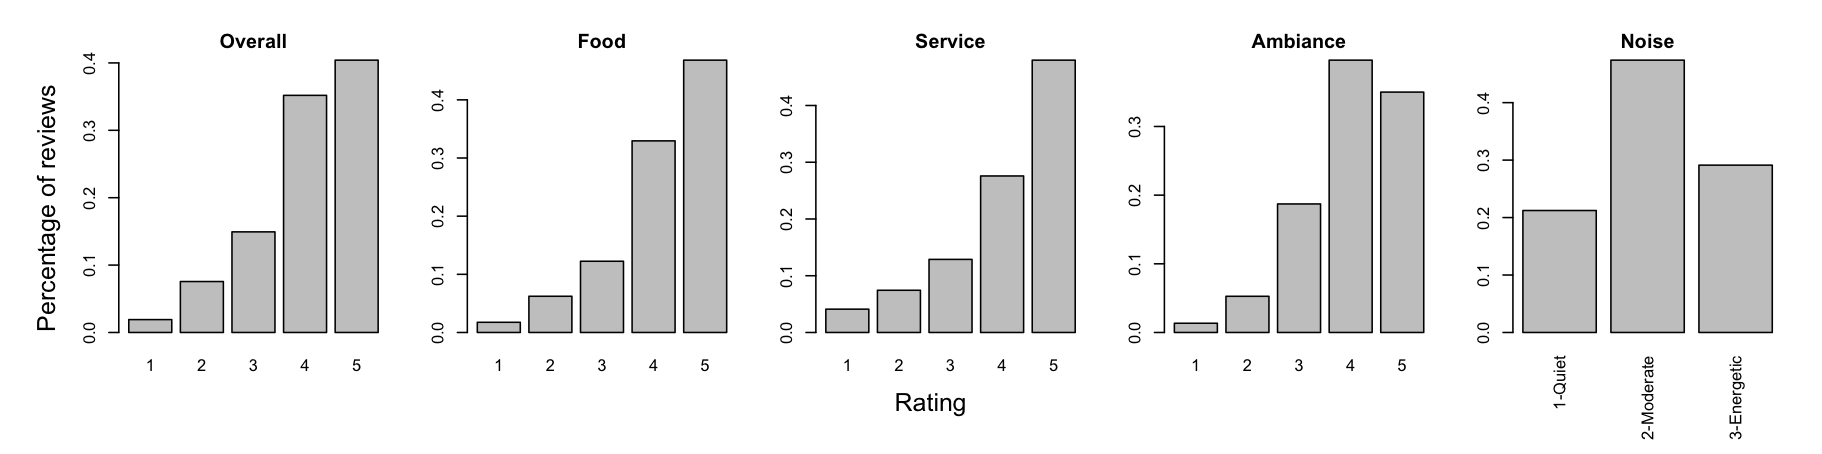 figures/opentable-ratings.png